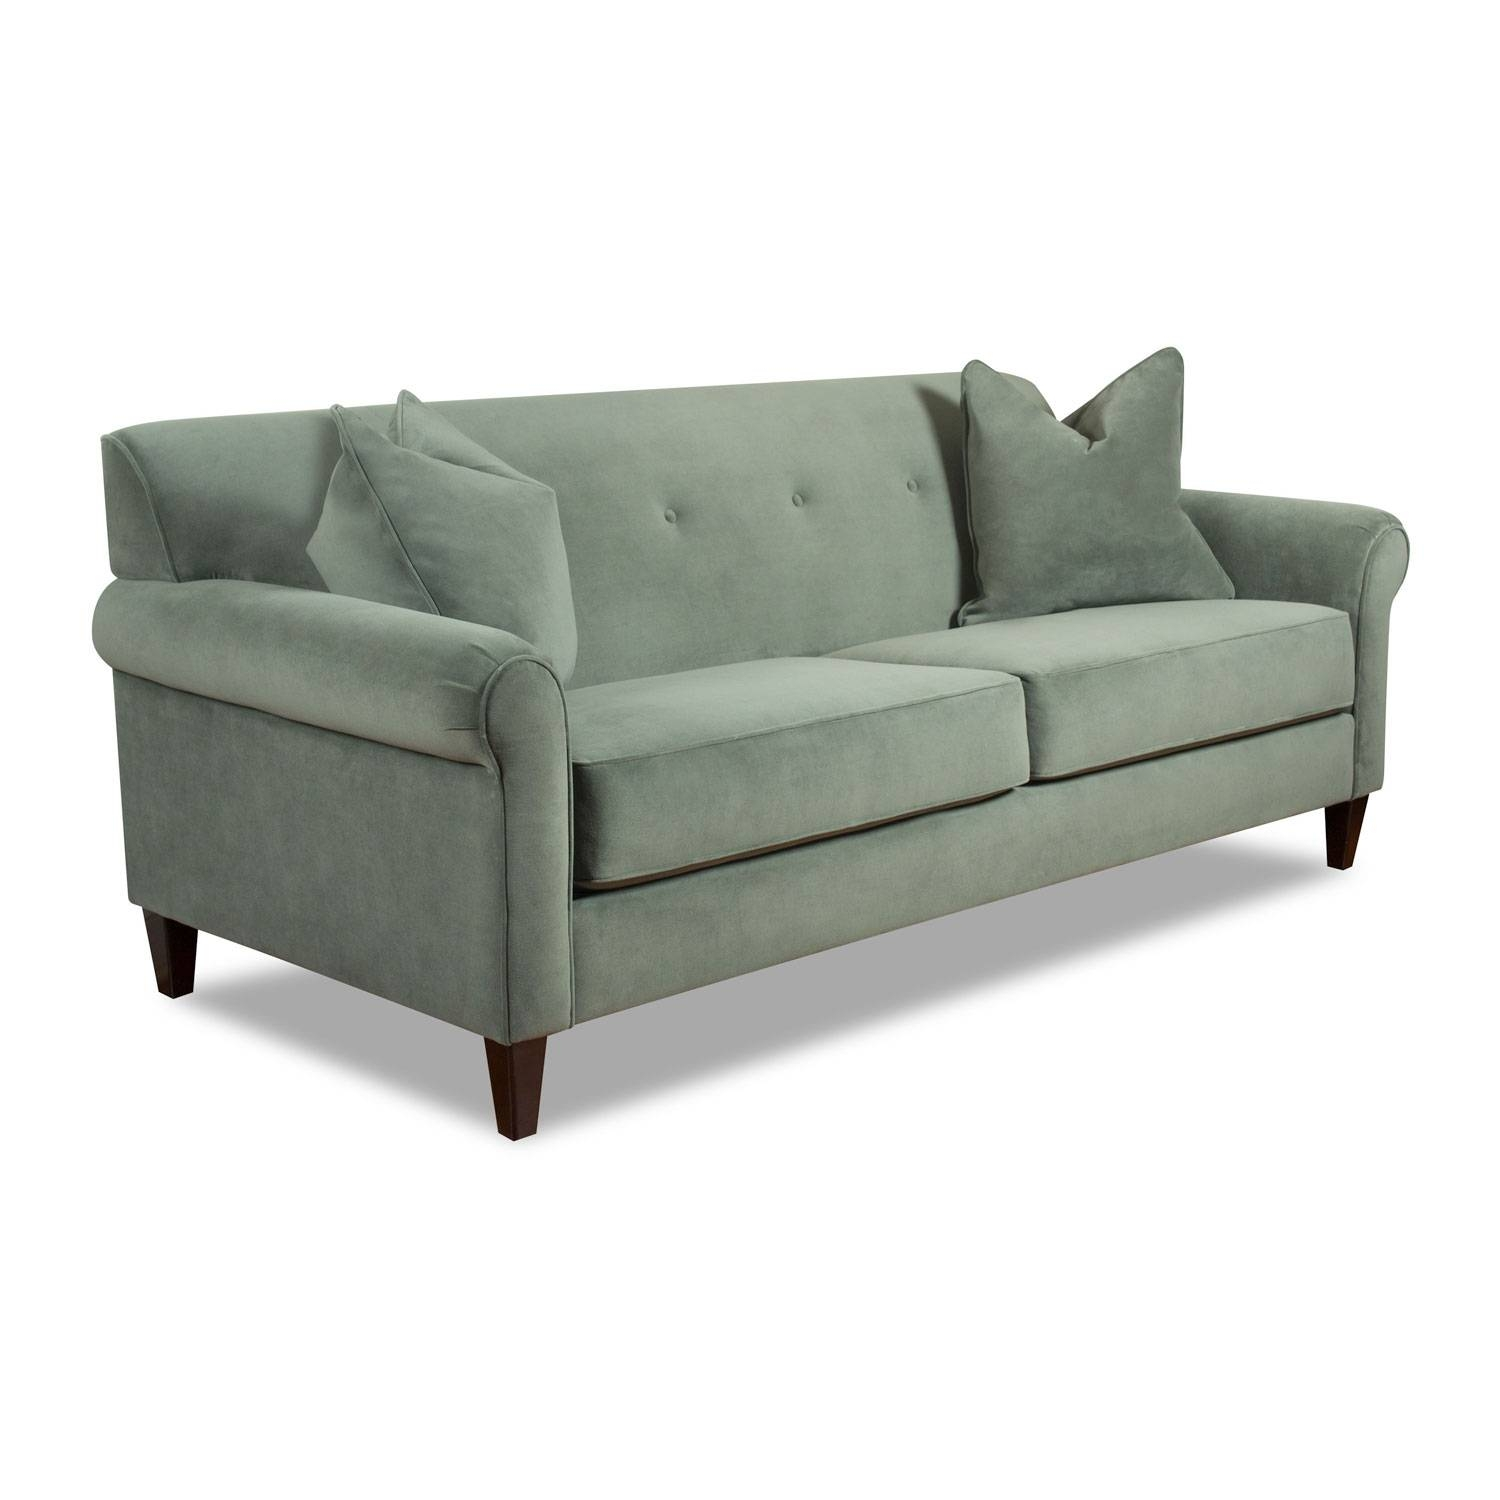 Remarkable Bauhaus Sectional Sofa #2229 : Furniture – Best Within Bauhaus Sectional Sofas (View 19 of 30)